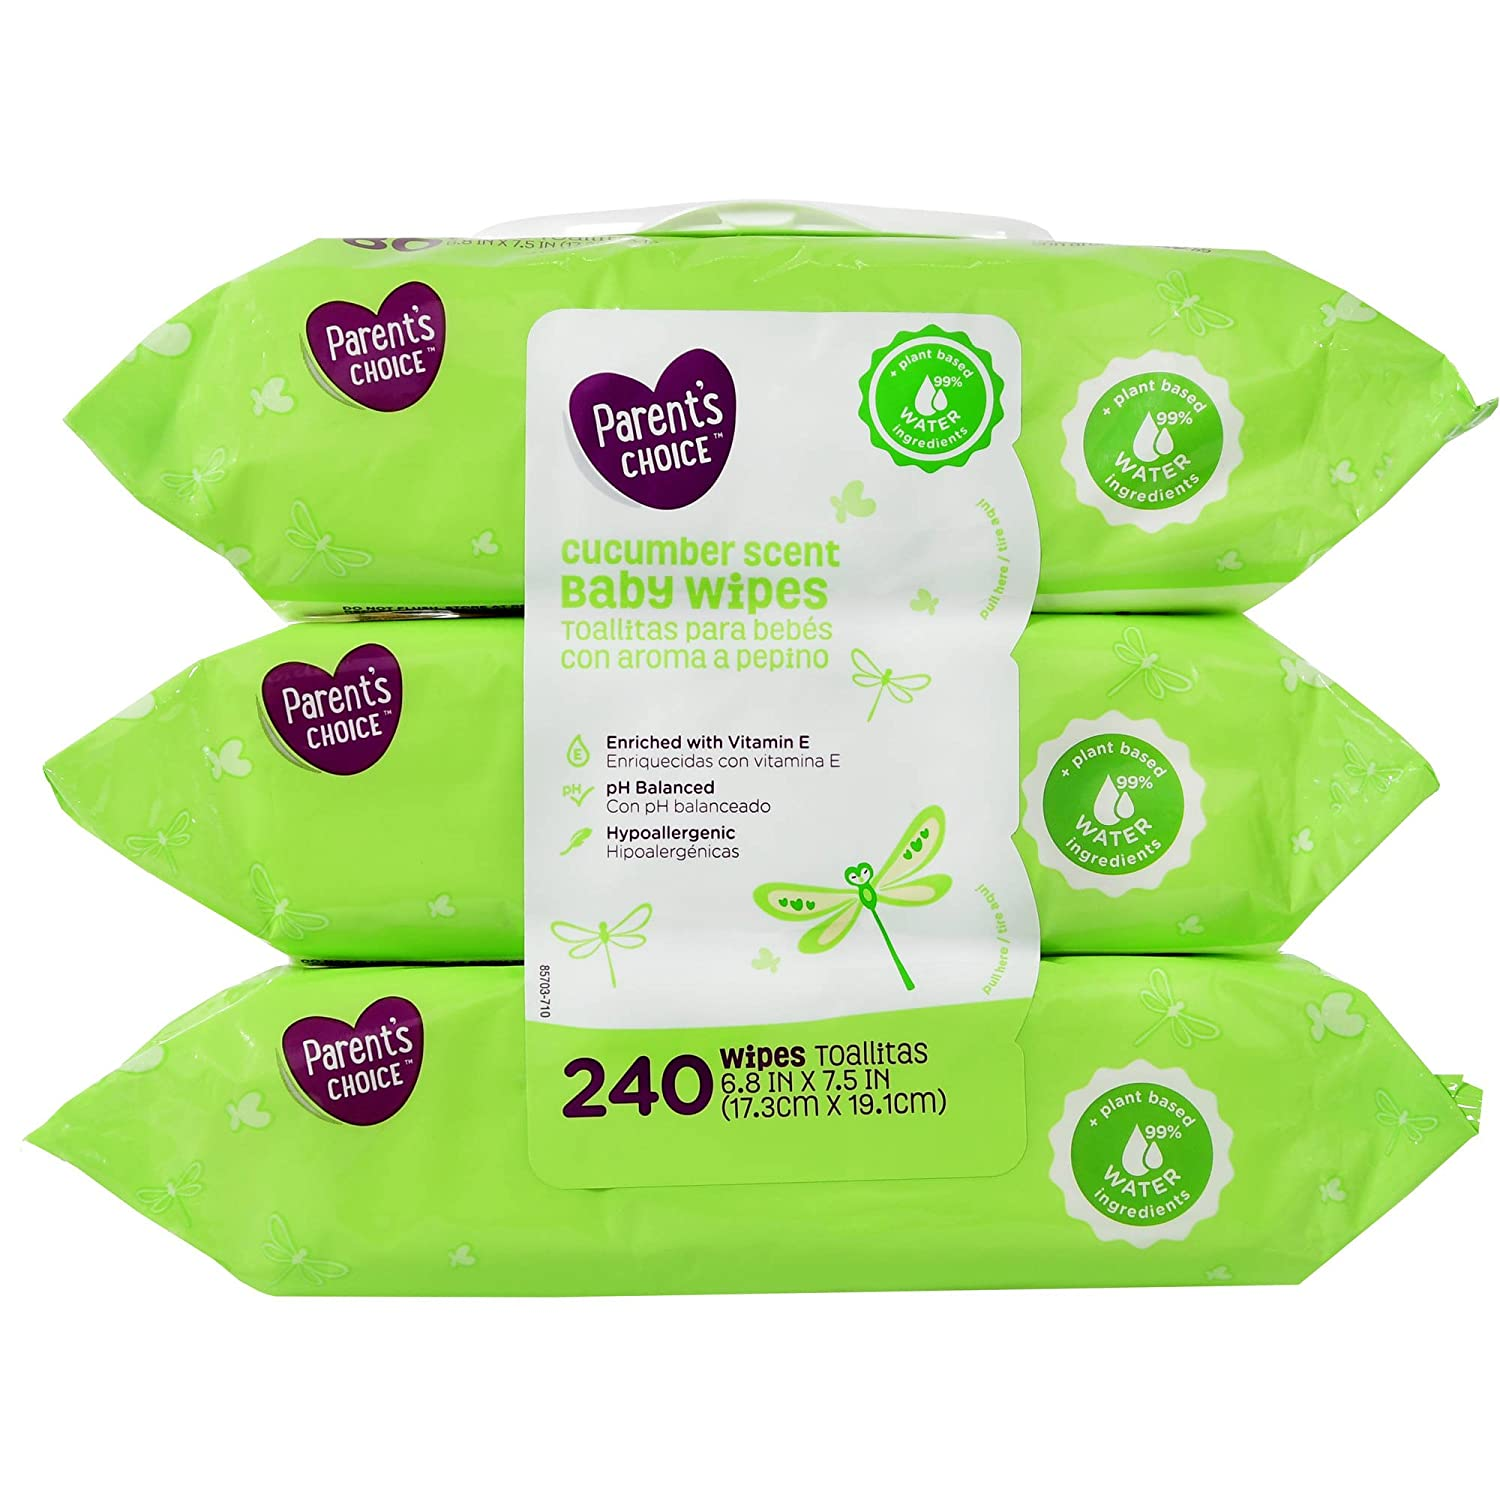 Amazon.com: Parents Choice Cucumber Scent Baby Wipes, 3 packs of 80 (240 ct): Baby